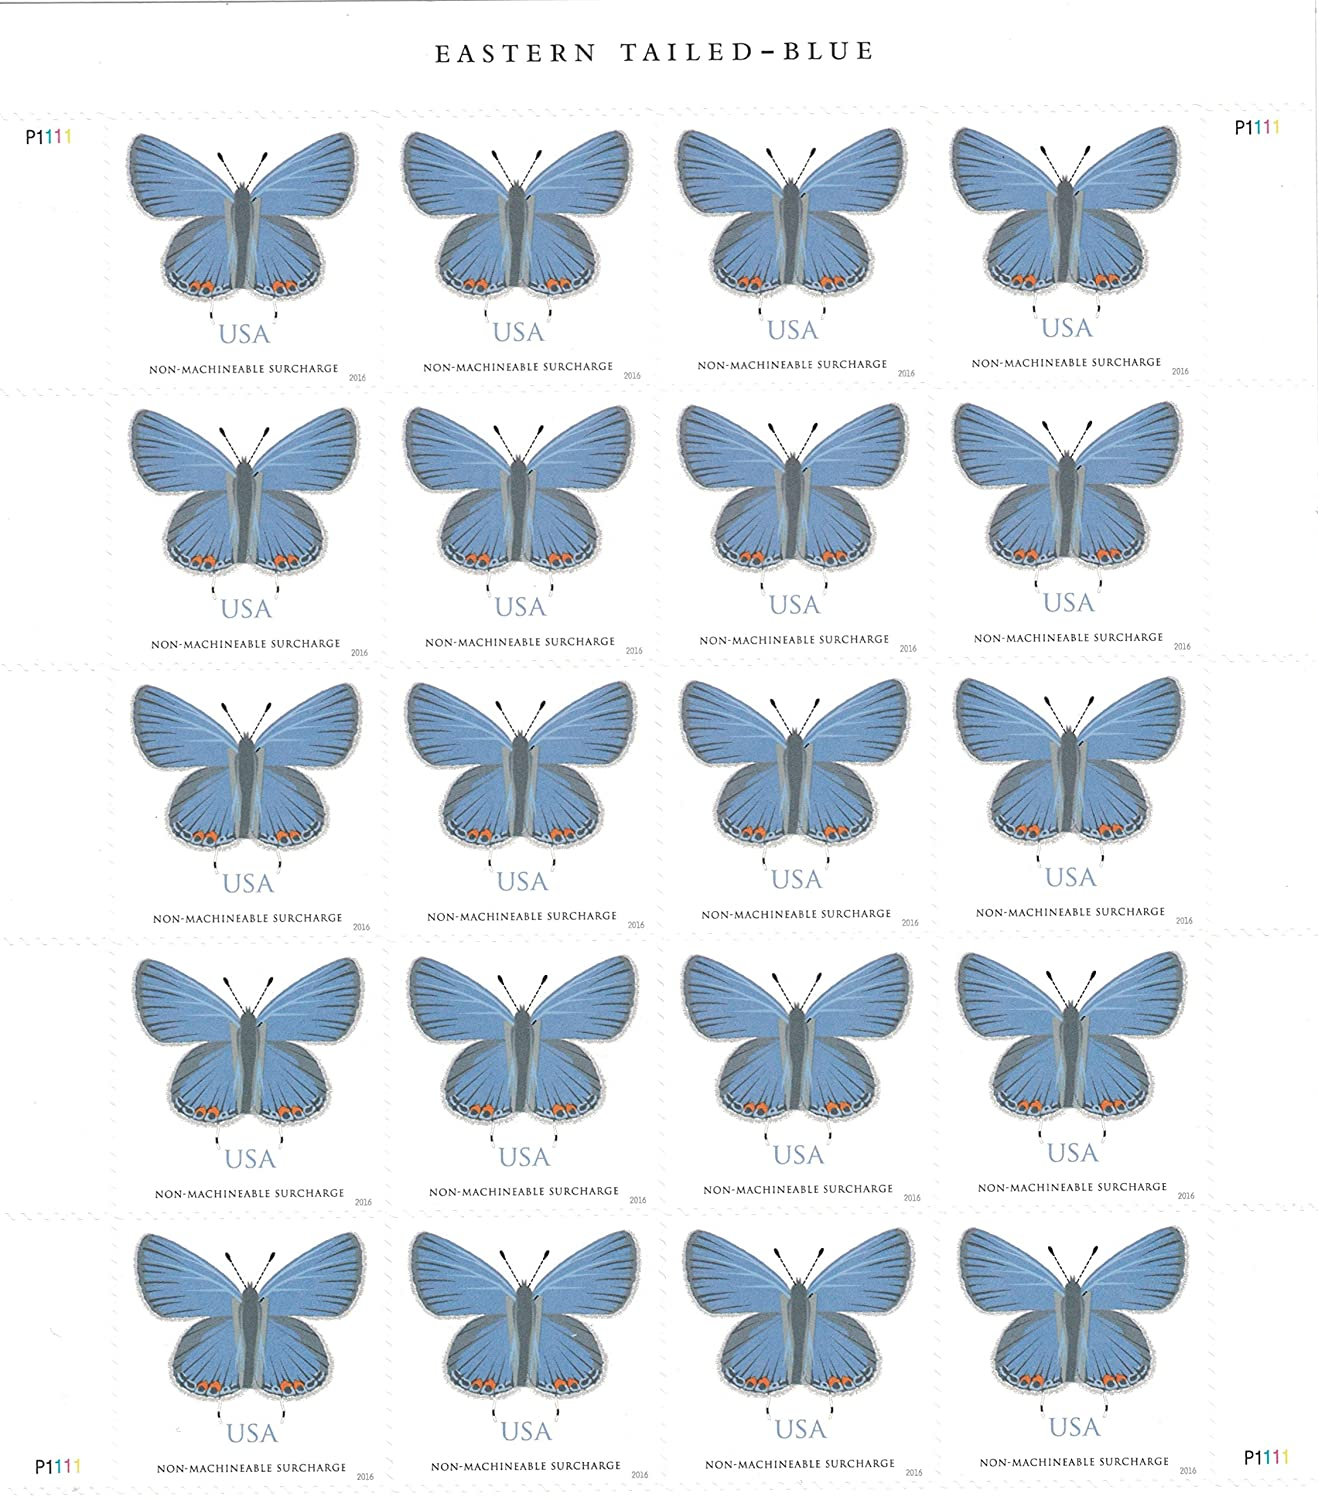 Amazon.com : USPS Eastern Tailed-Blue - 5 Sheets of 20 stamps (two ...